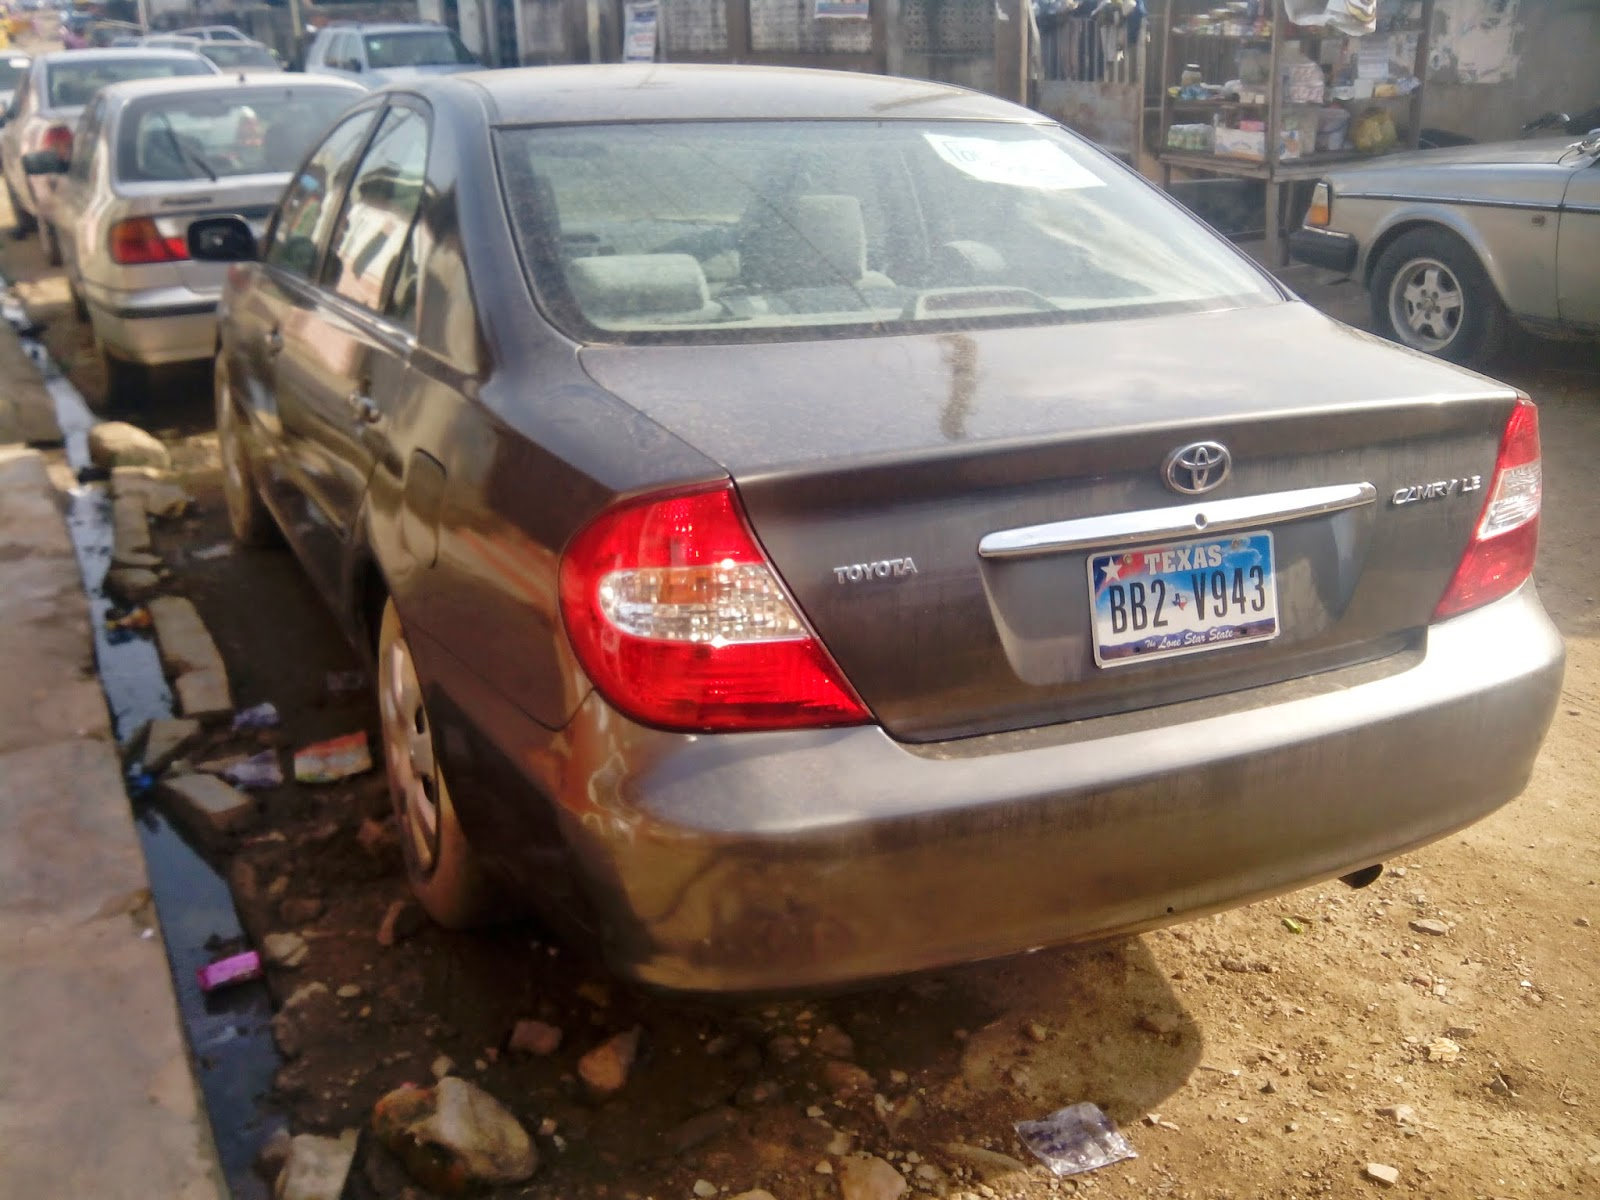 Extra Neat 2004 Model Toyota Camry For Sale At An Affordable Price